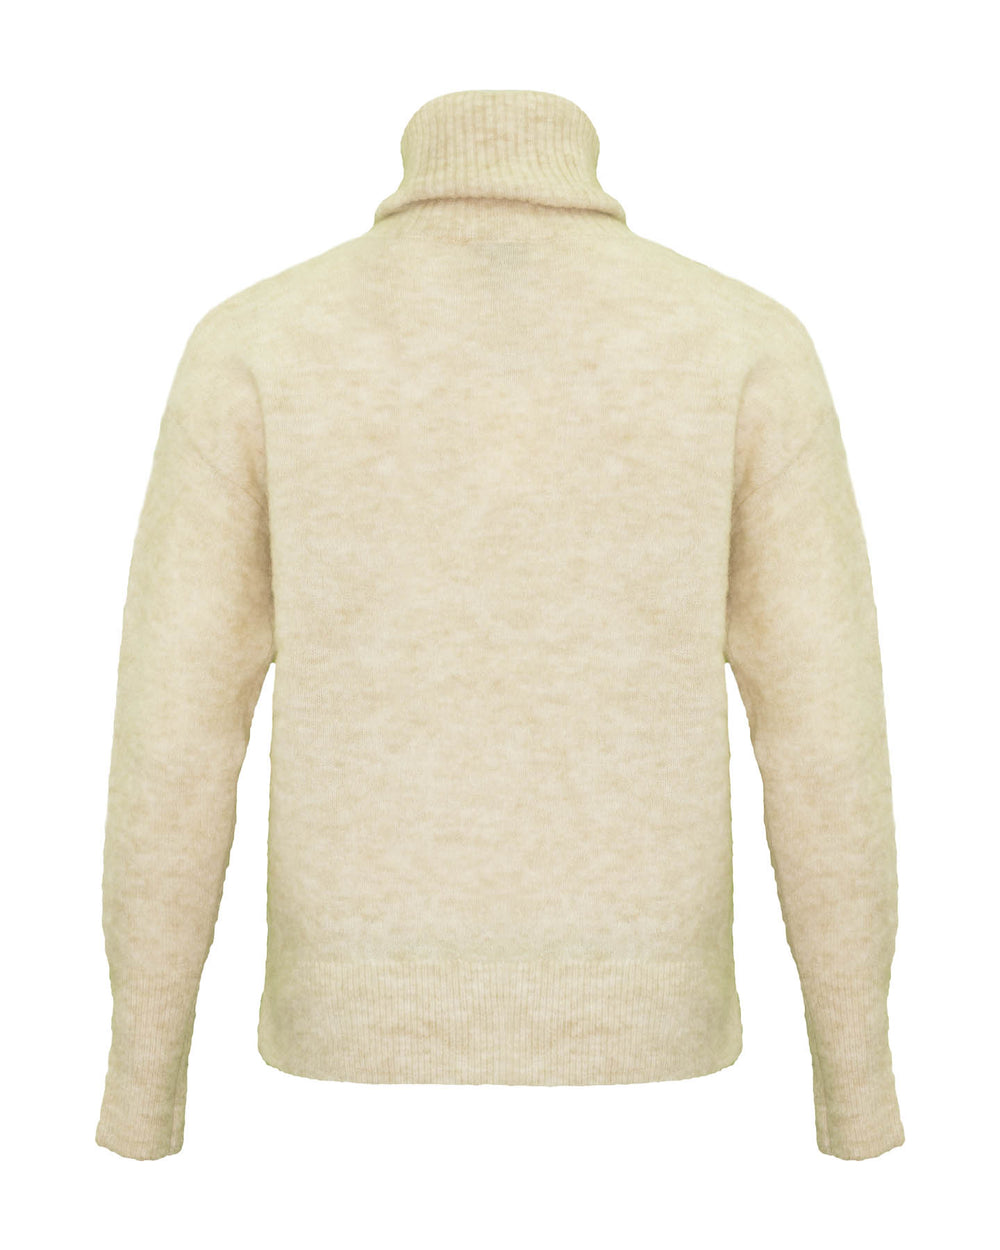 Paxi Turtleneck Pullover